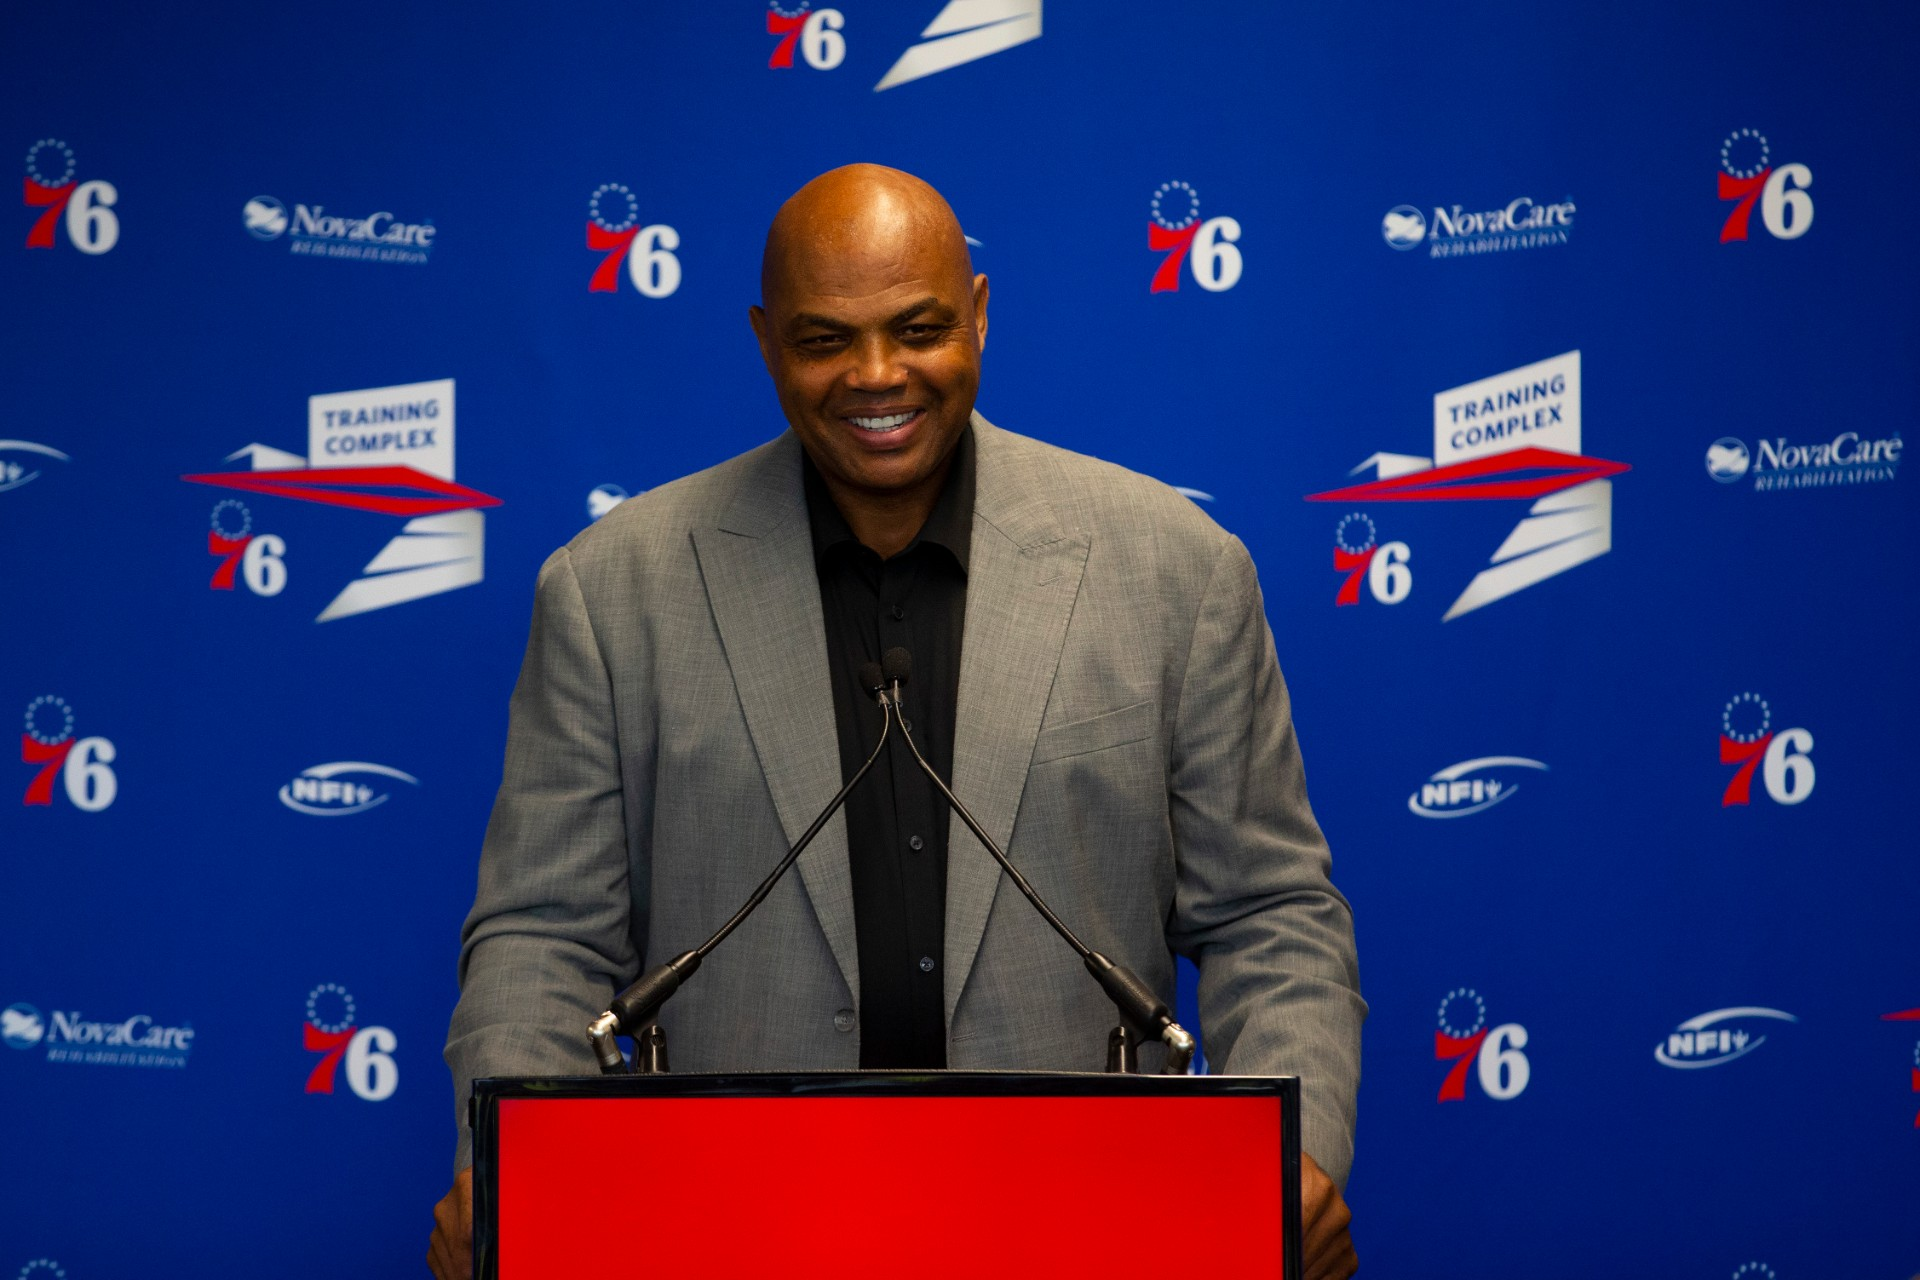 We take a look at events that happened on March 30 in previous years, including a tribute to Philadelphia 76ers legend Charles Barkley.